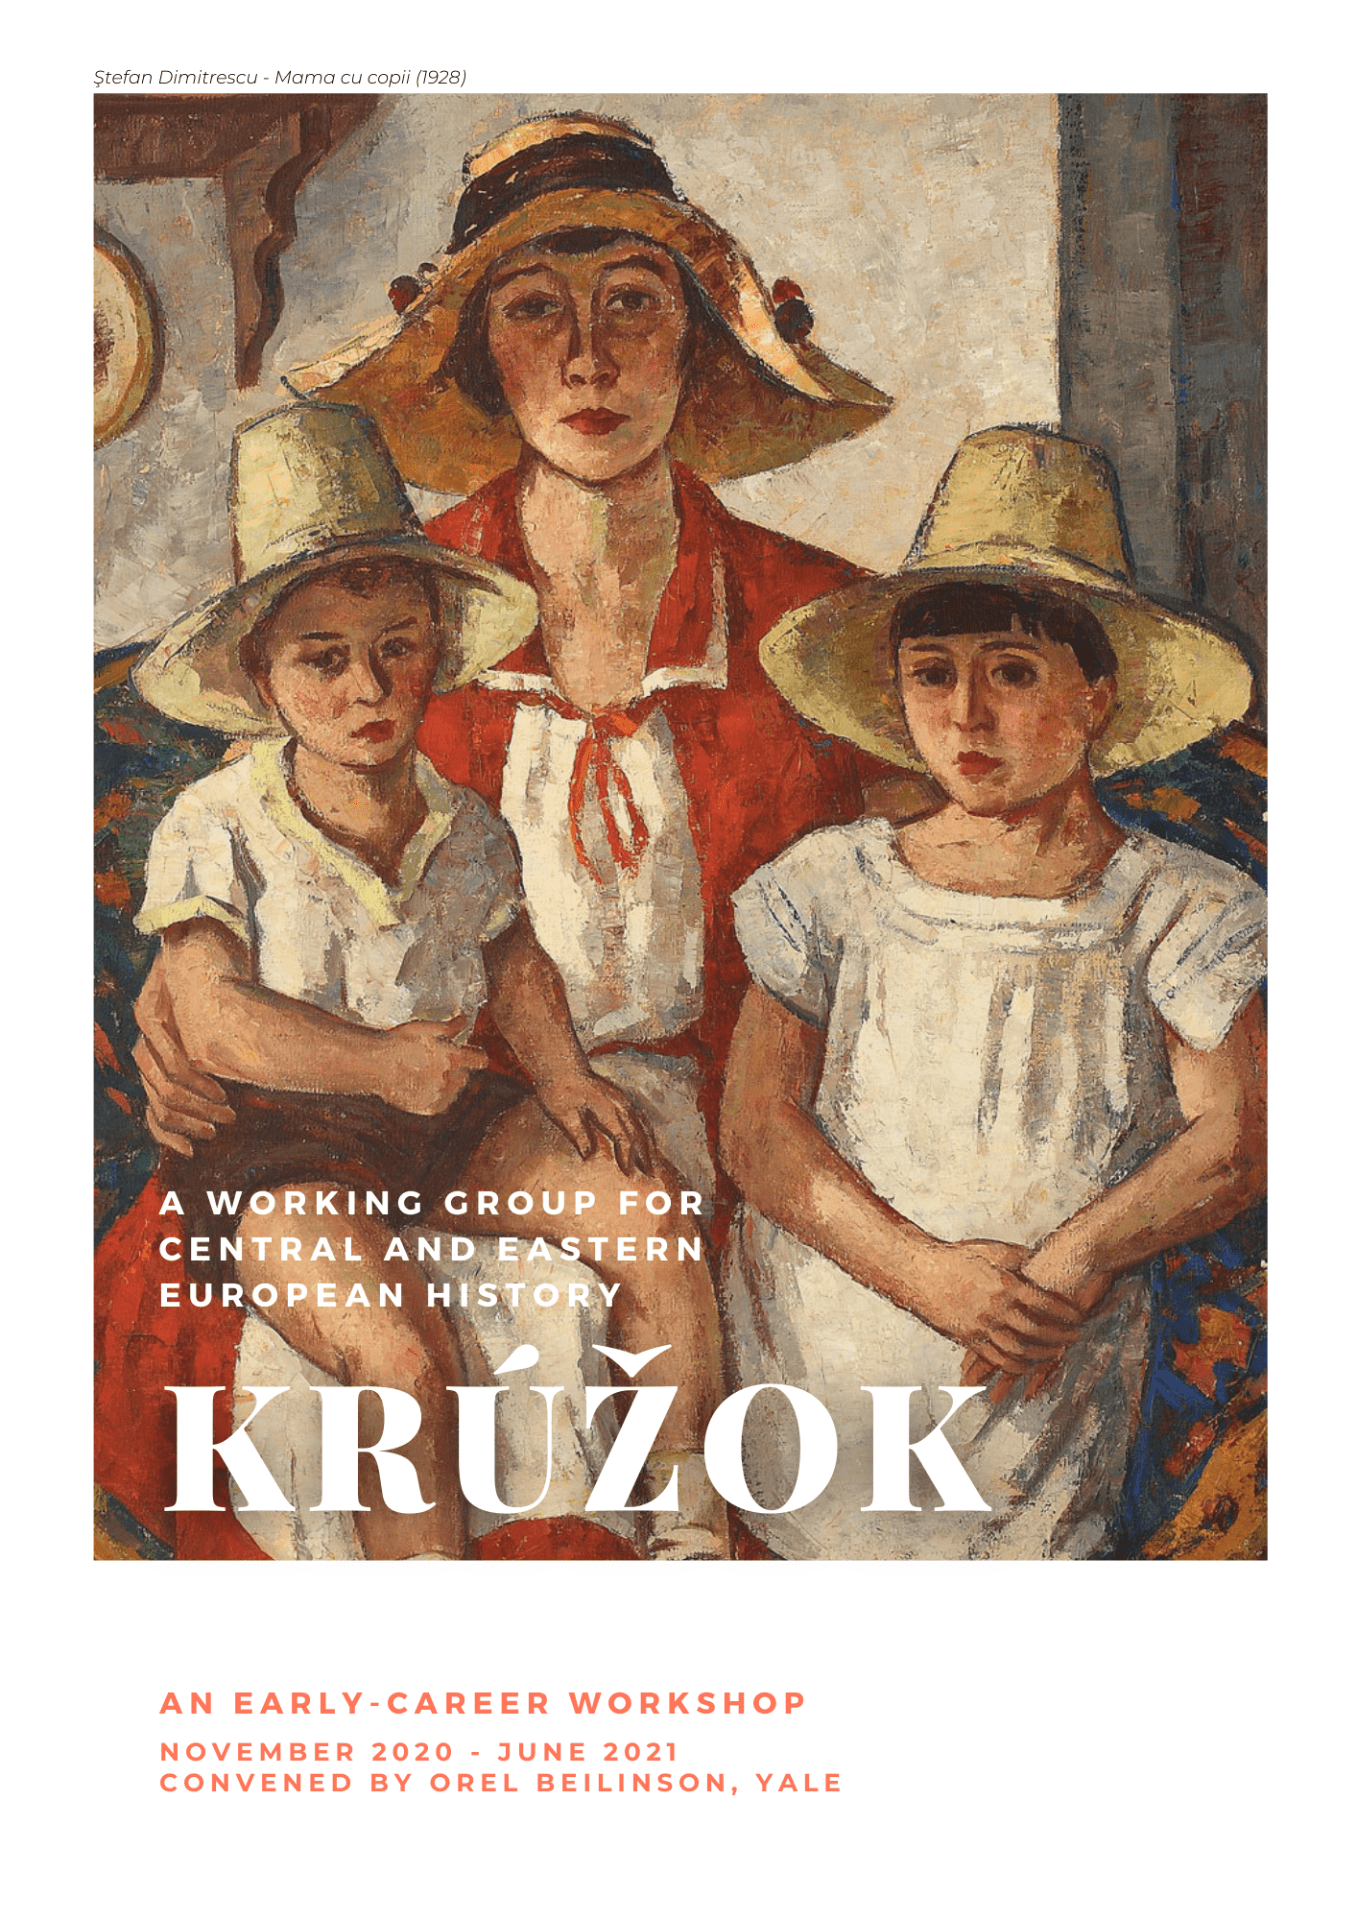 The cover of the workshop's program, featuring Ştefan Dimitrescu's painting Mama cu copii (1928).